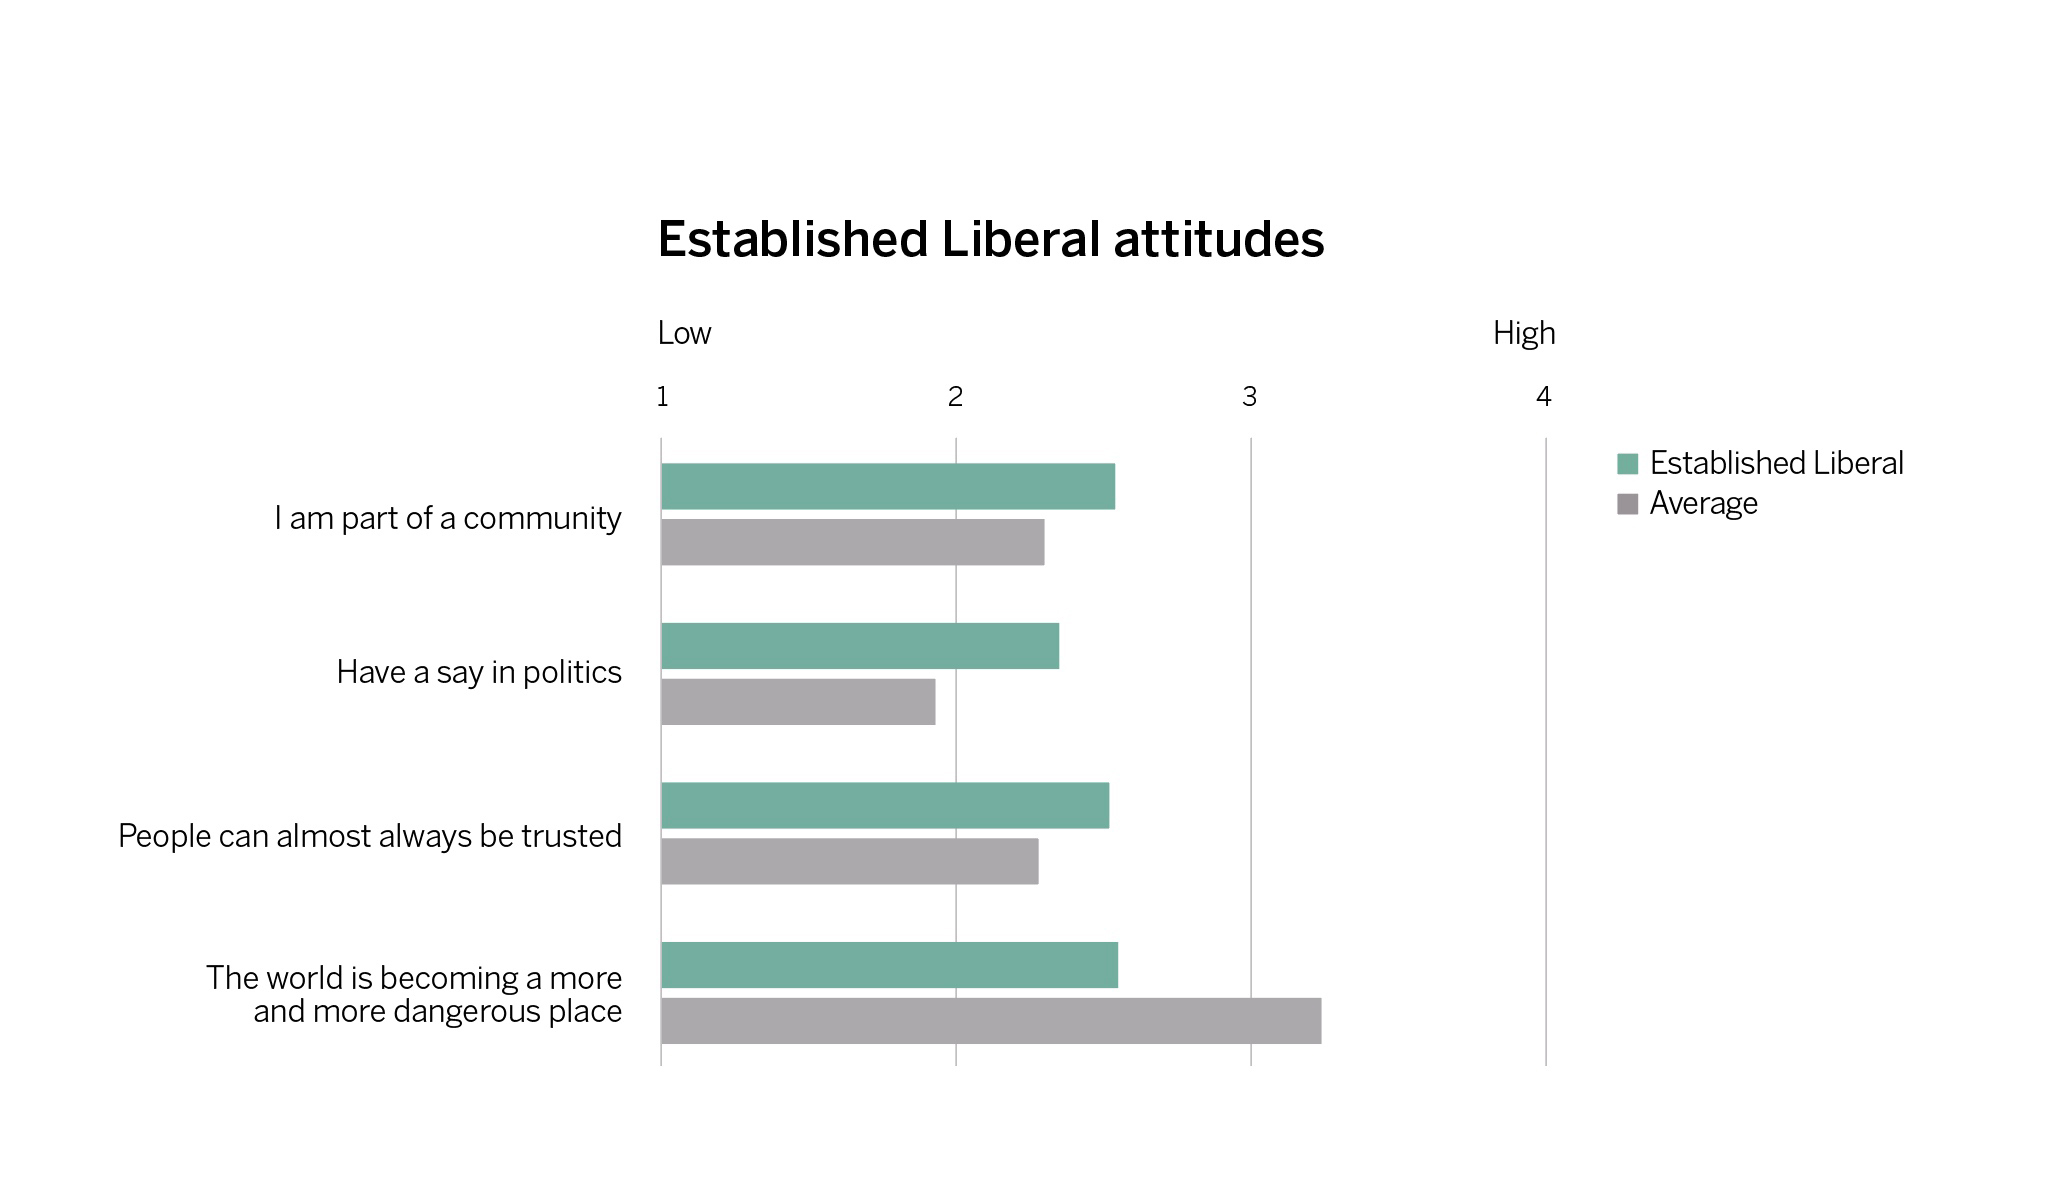 Established Liberal views about society, 1 = low level of agreement, 4 = high level of agreement